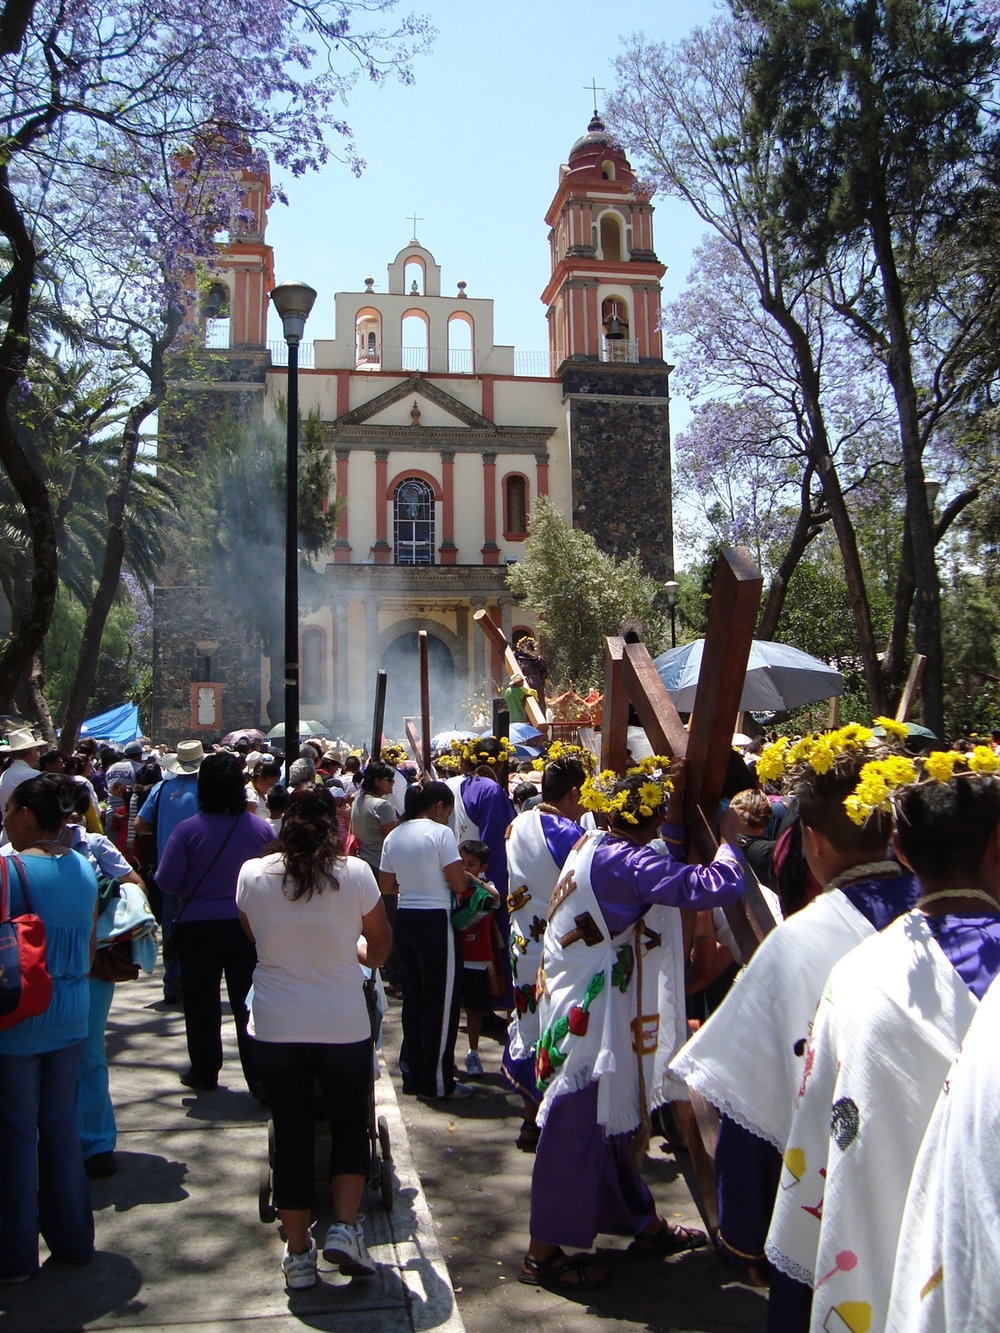 This is not from San Miguel, but it does illustrate an Ash Wednesday street procession.